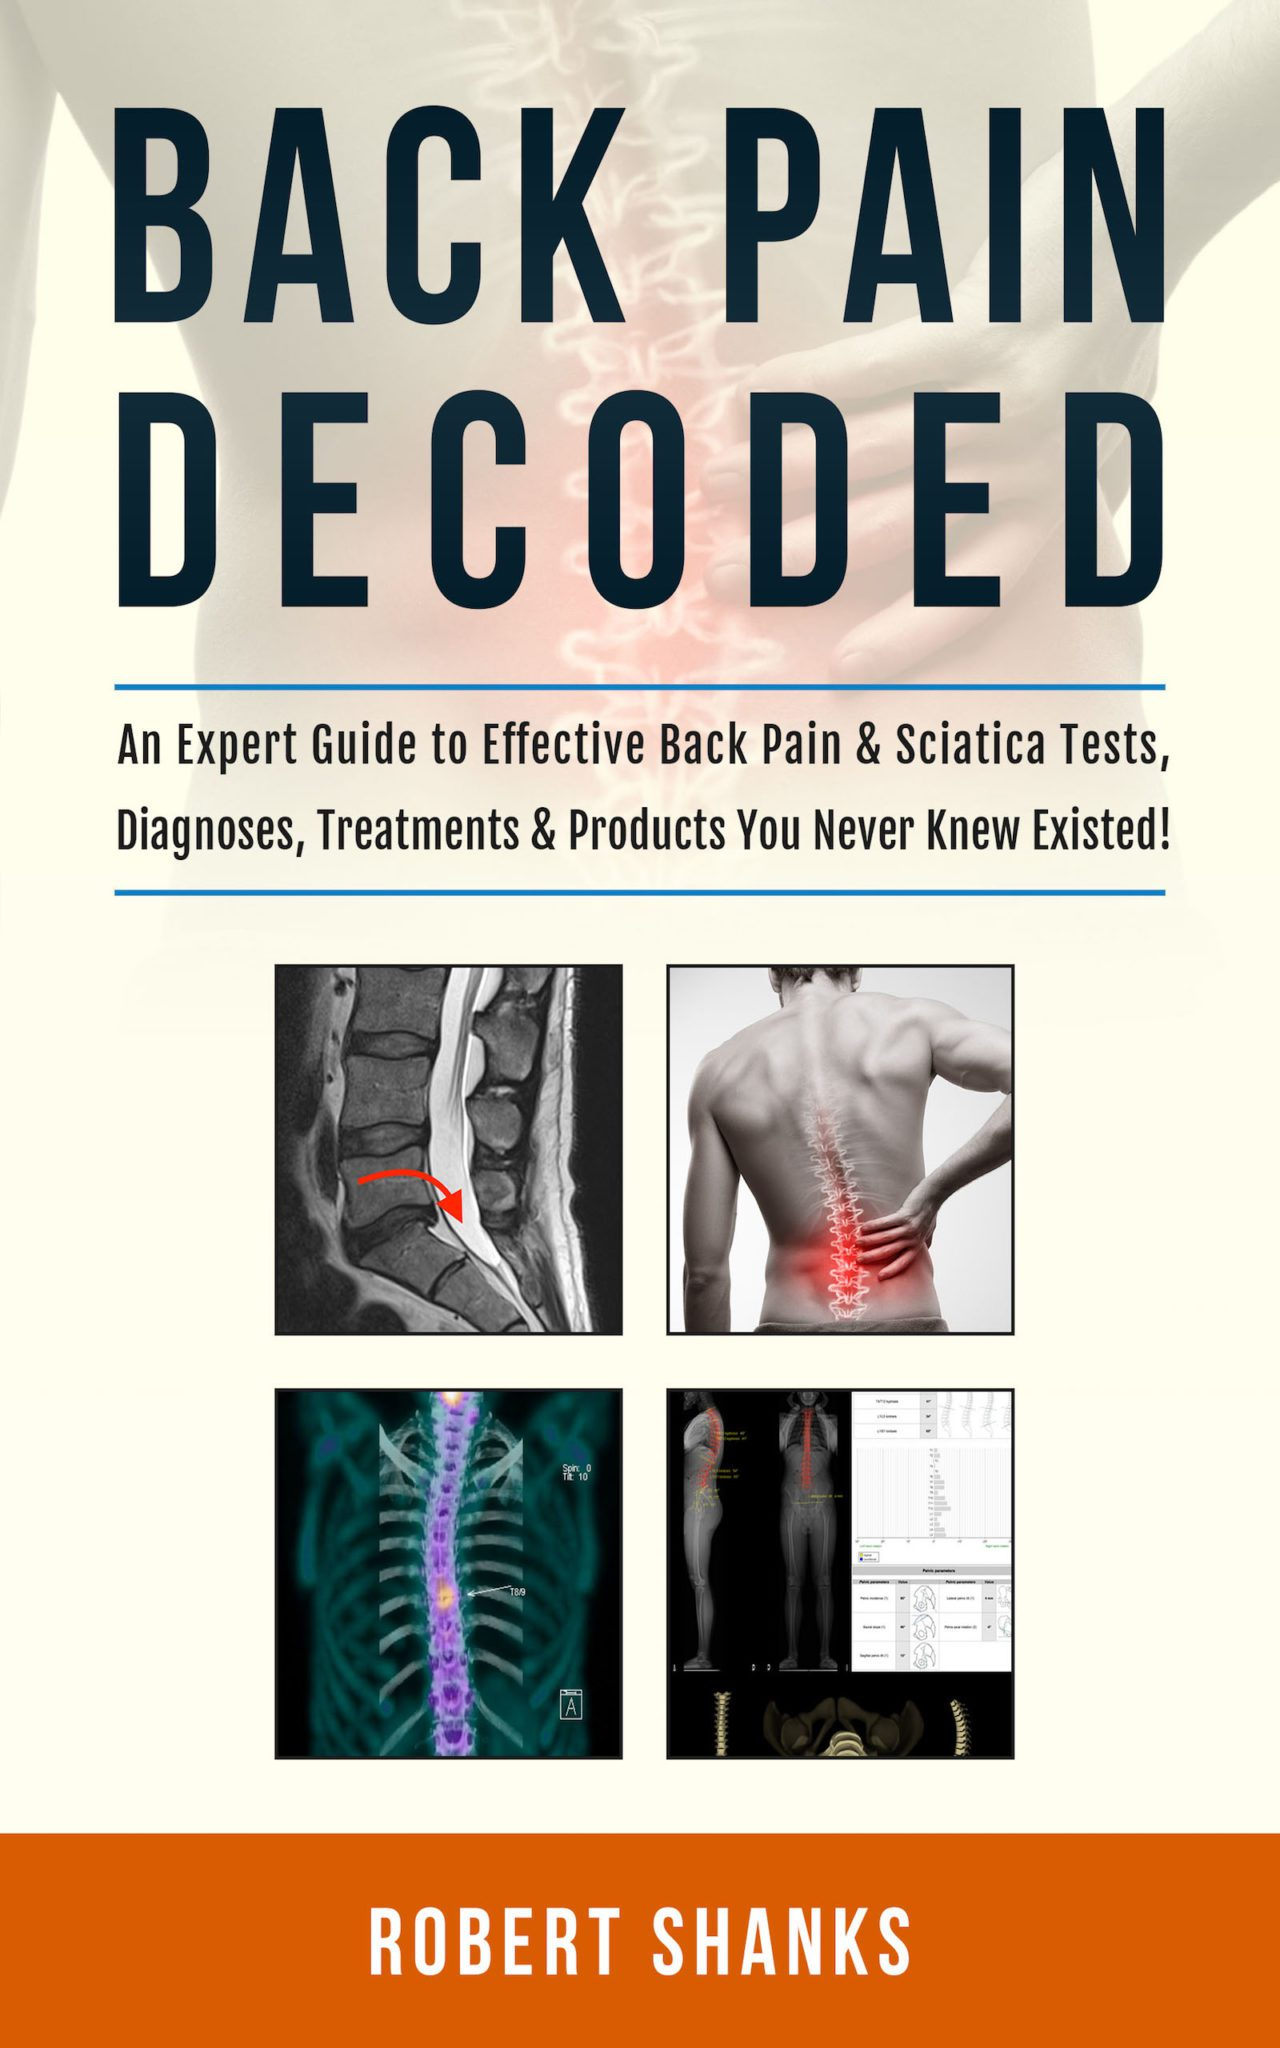 Back Pain Decoded